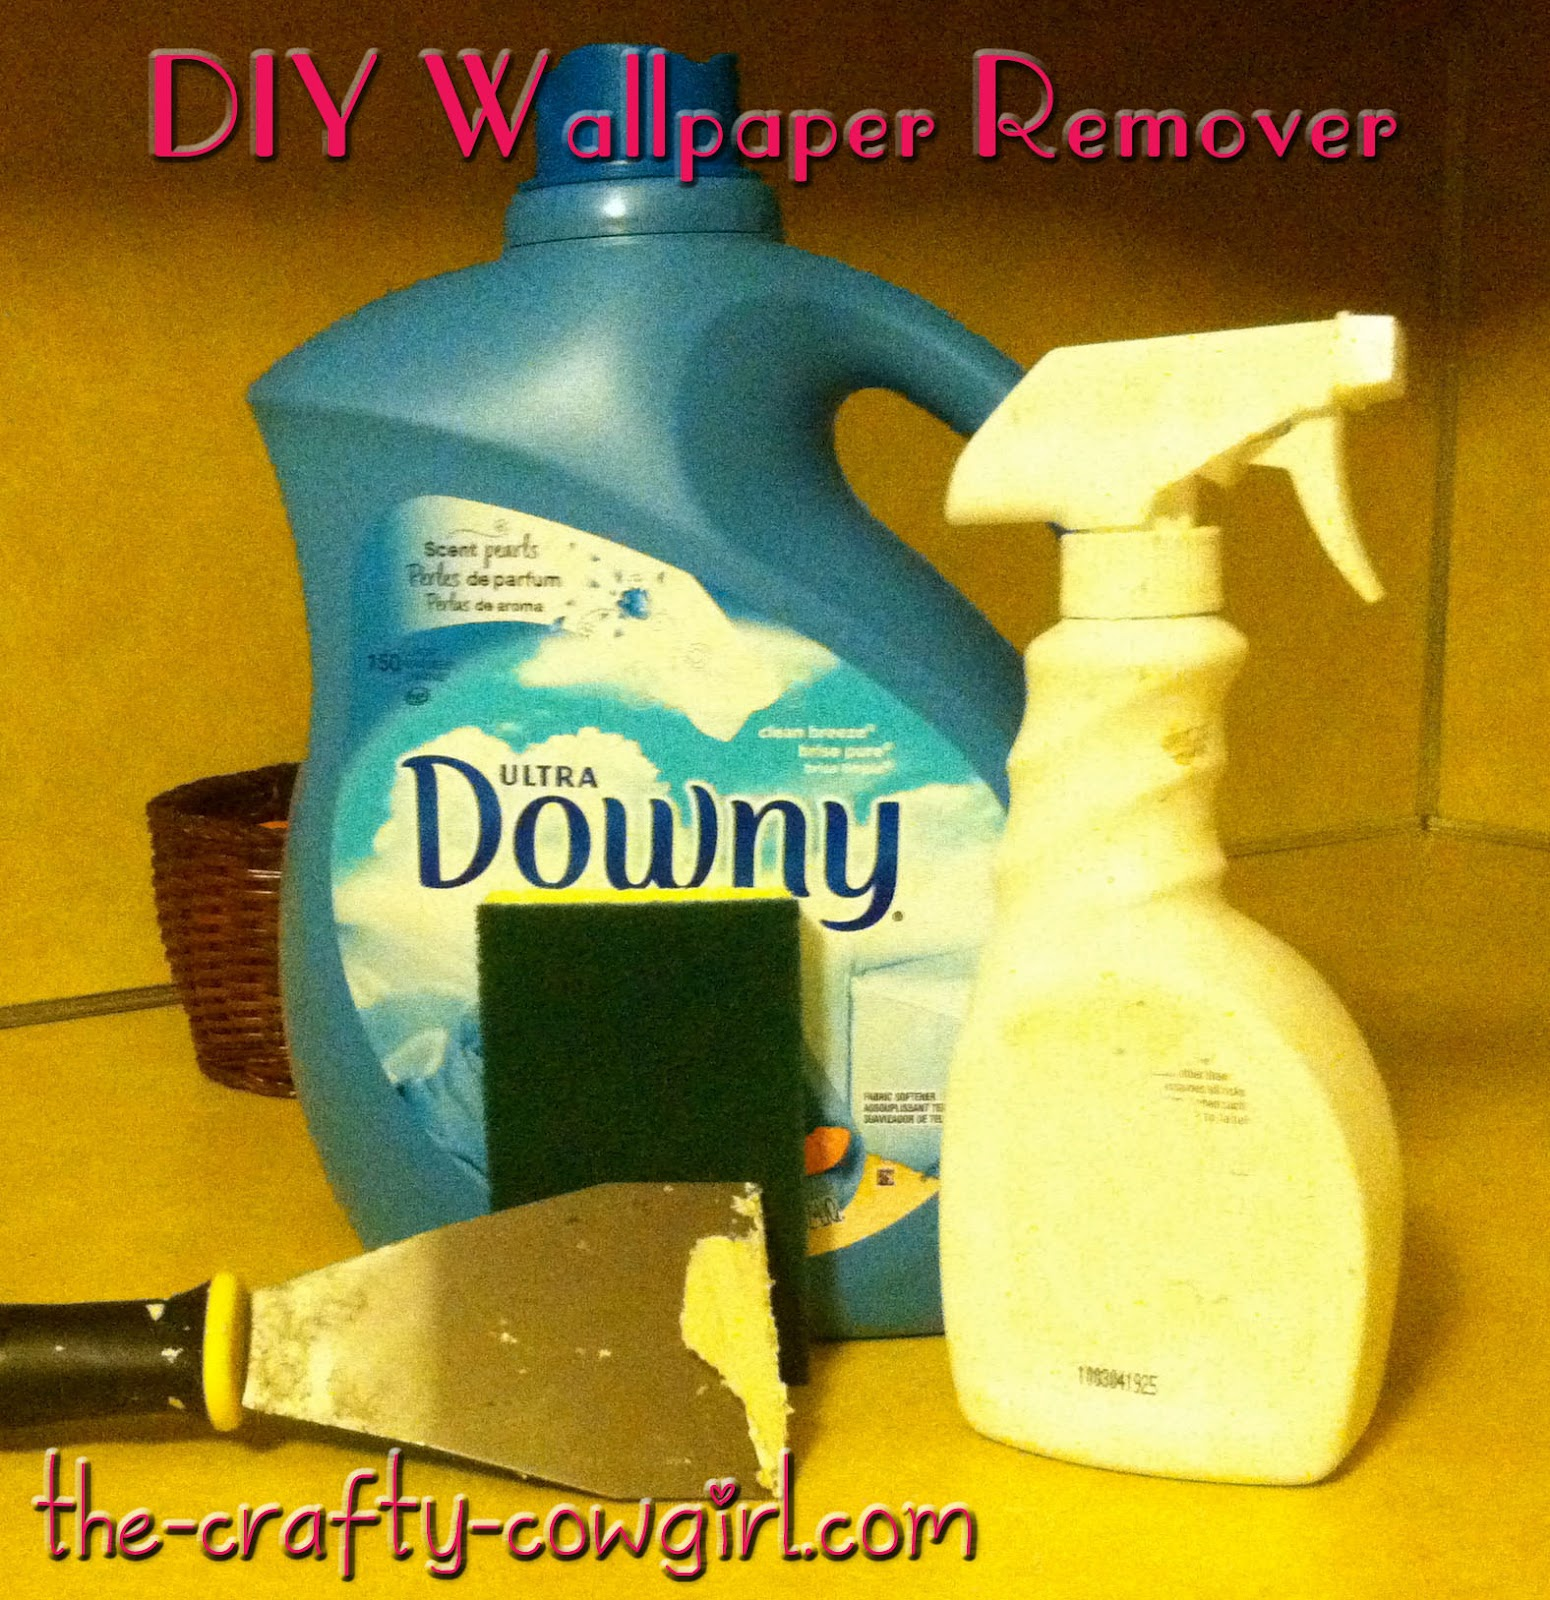 Free download Wallpaper Remover 1550x1600 for your ...